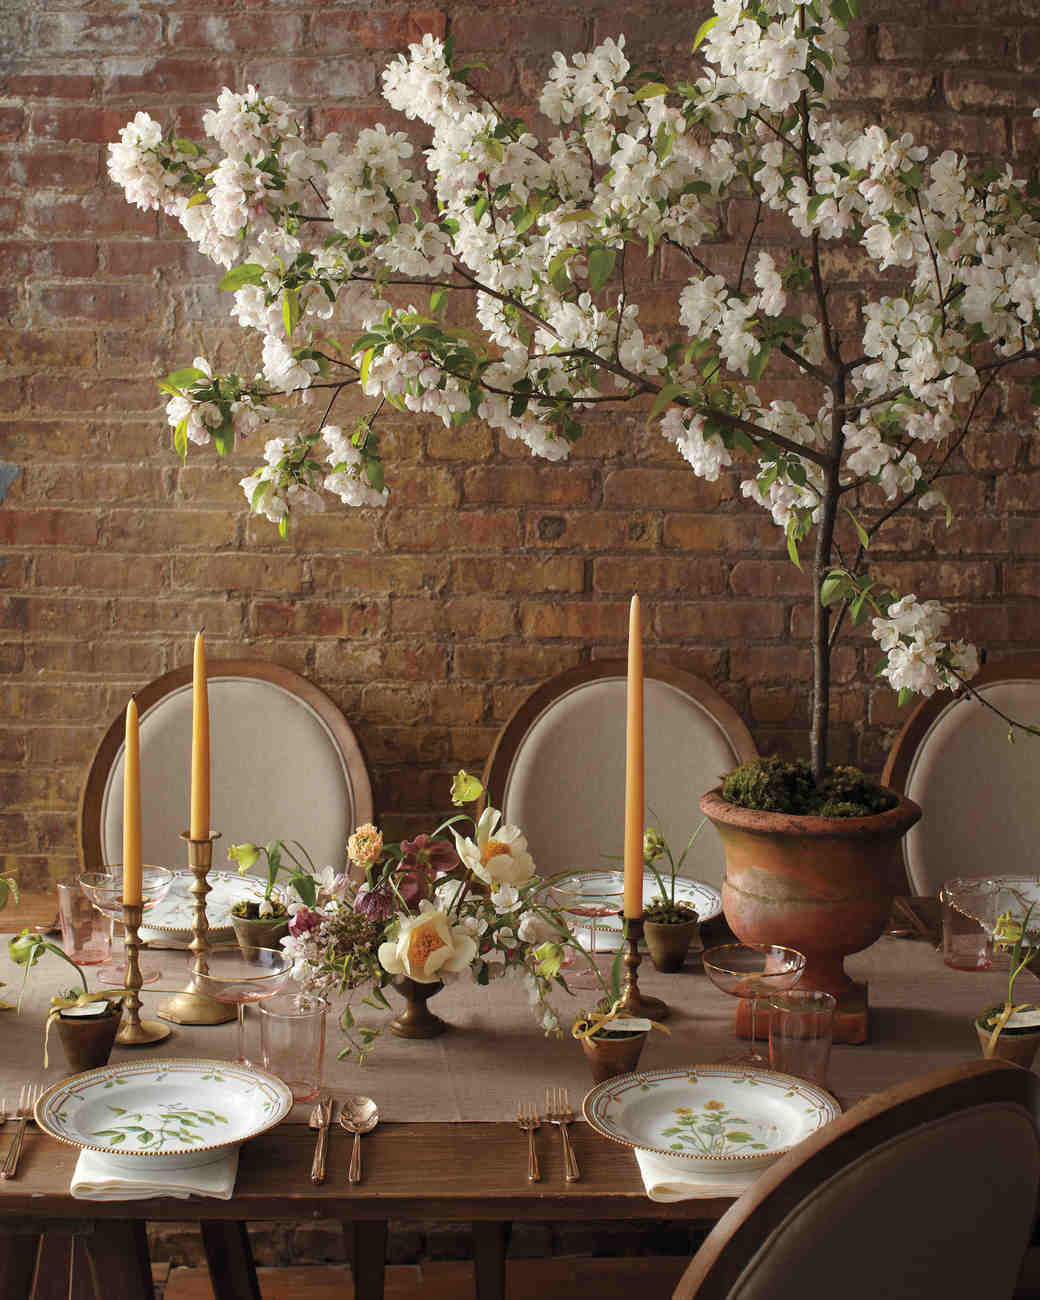 Spring wedding flower ideas from the industrys best florists spring wedding flower ideas from the industrys best florists martha stewart weddings mightylinksfo